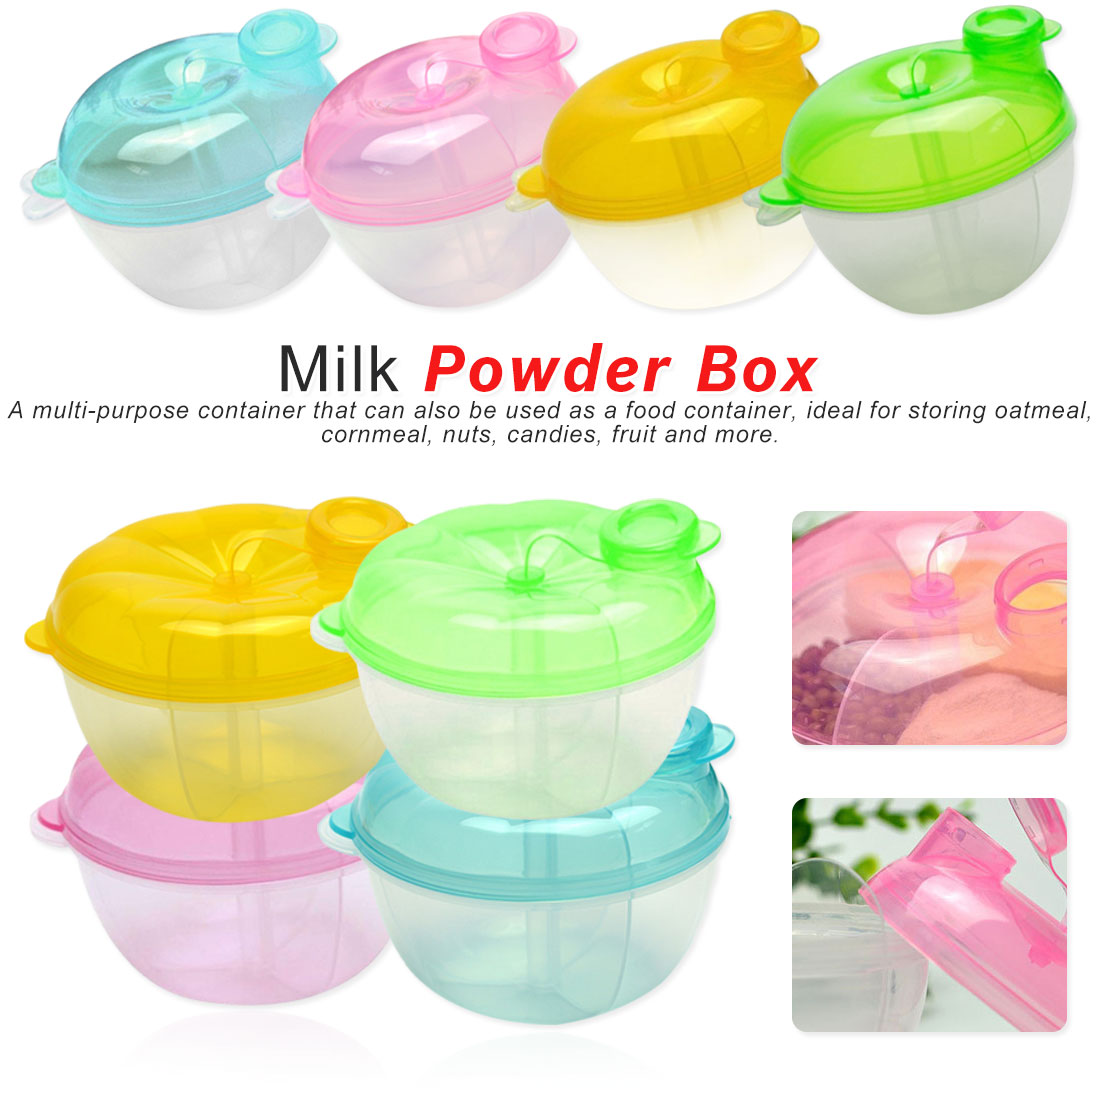 1PCS Baby Milk Powder Formula Dispenser Food Container Storage Feeding Food Box 3 Layer Travel Portable Storage Box For Infant